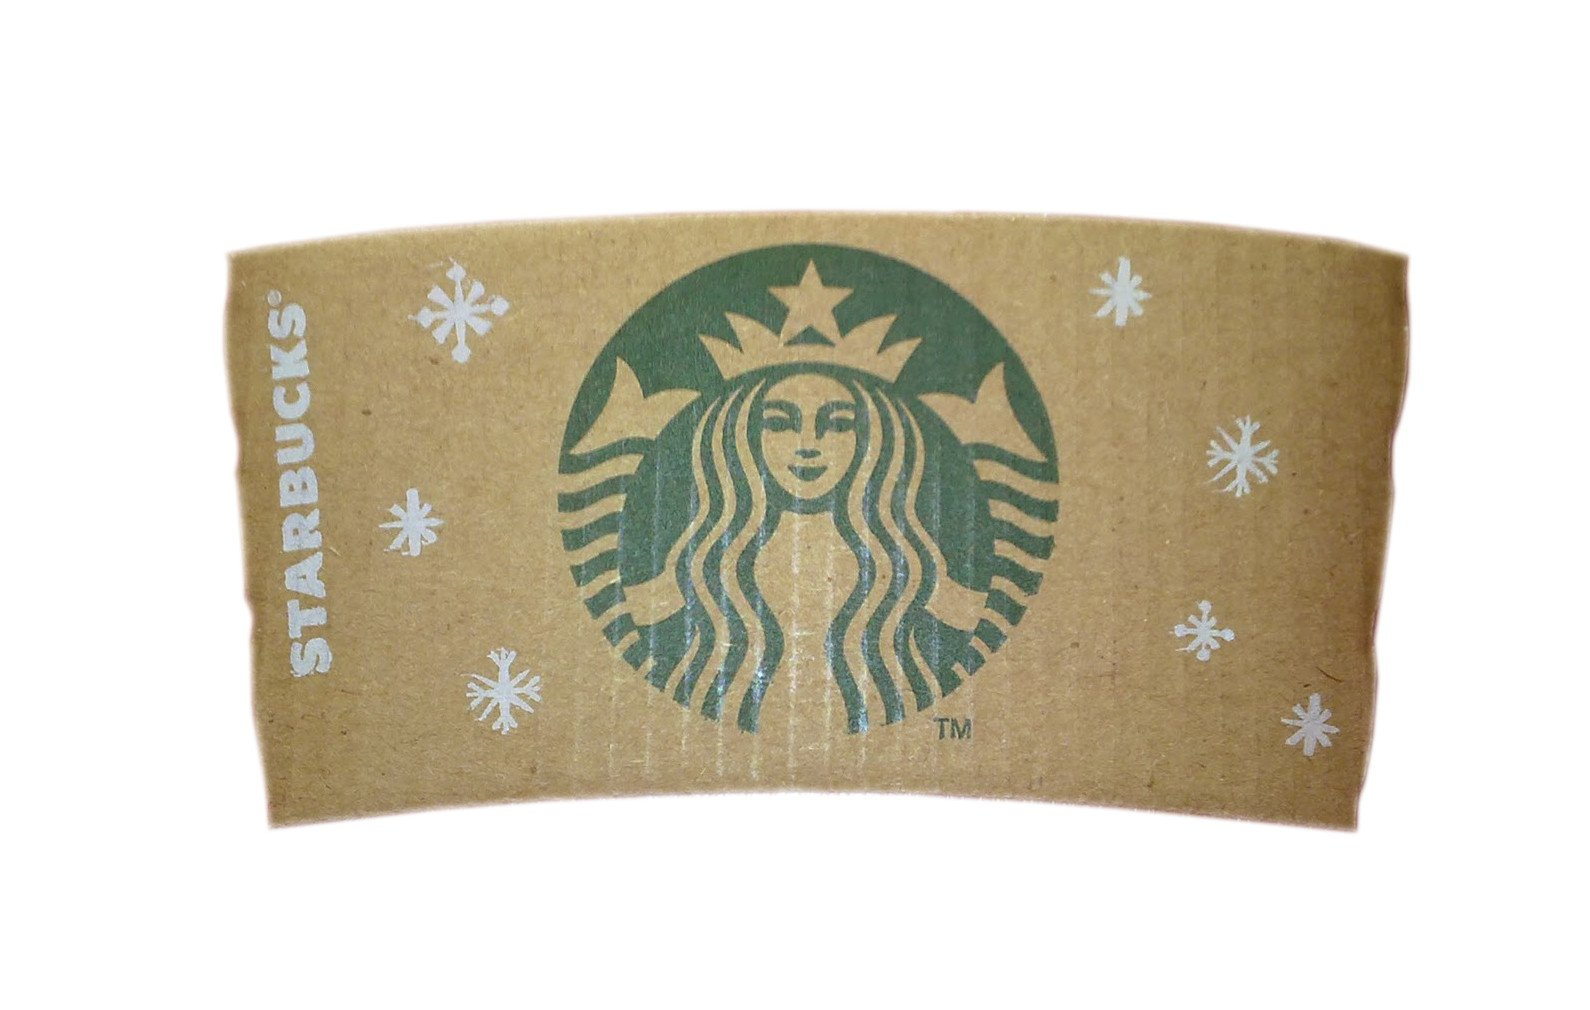 Starbucks Sleeve Template Dinner Menu Templates Cake Ideas and Designs